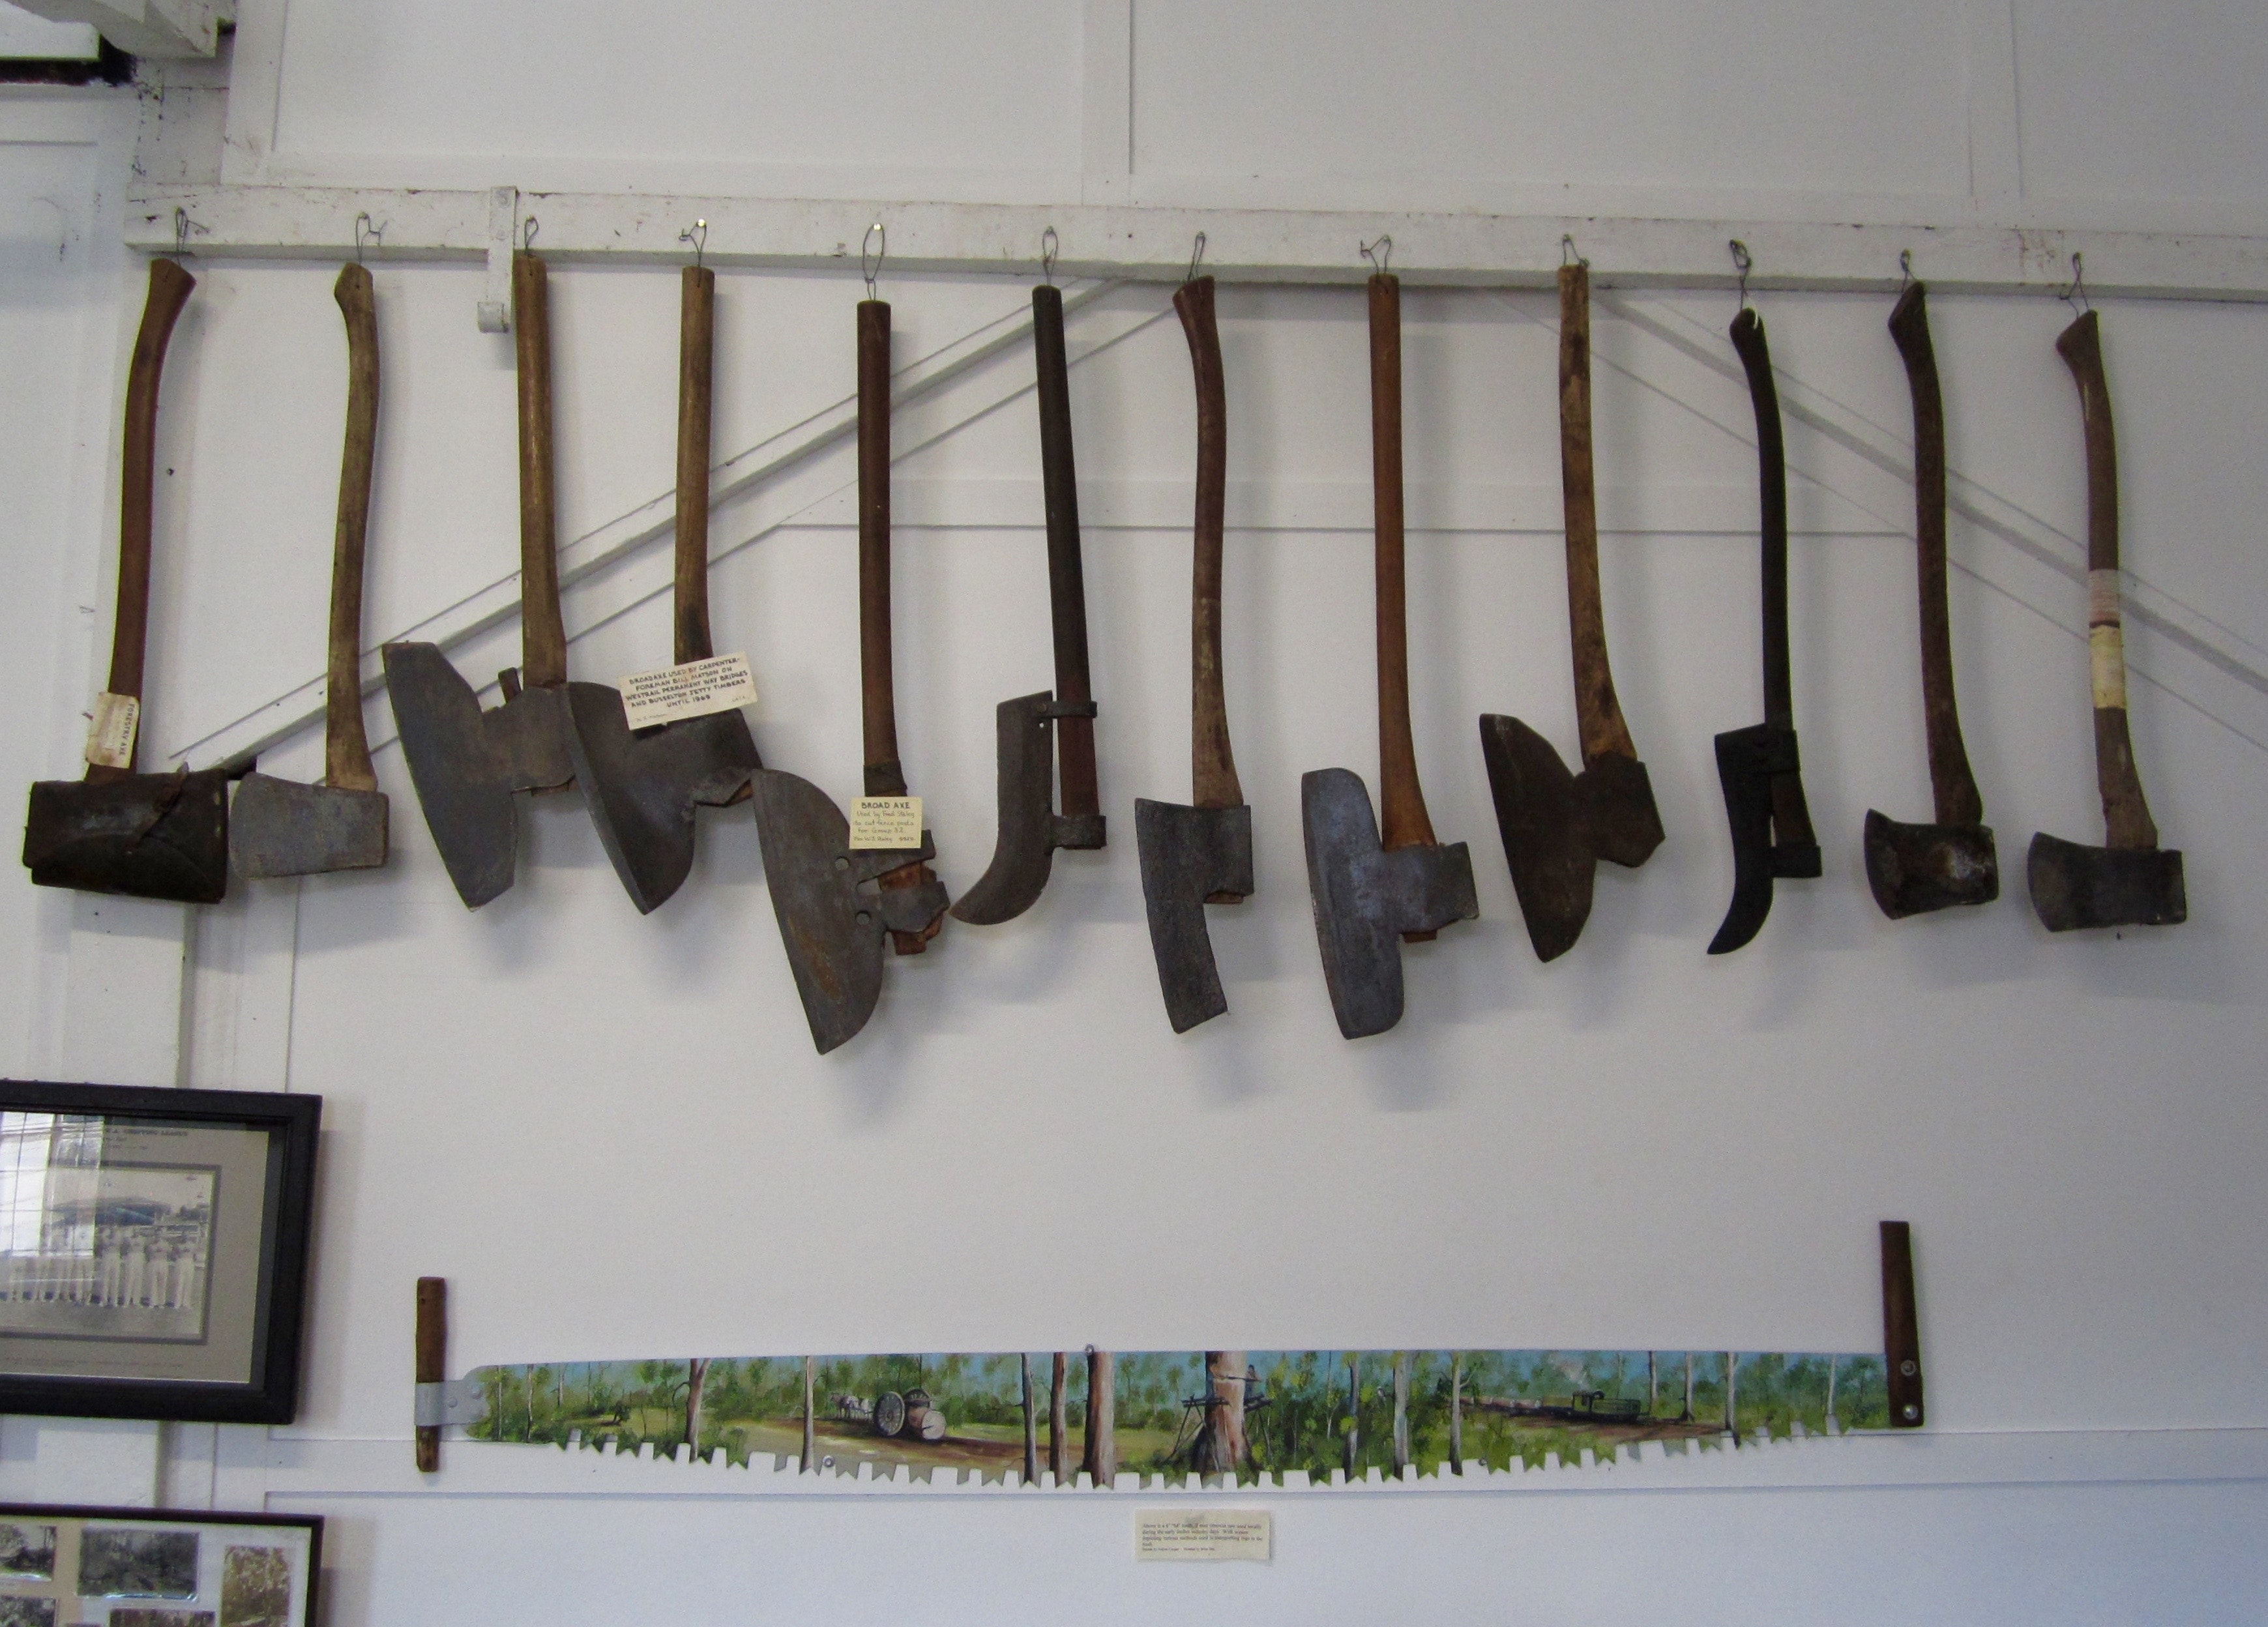 Axes - Busselton Museum